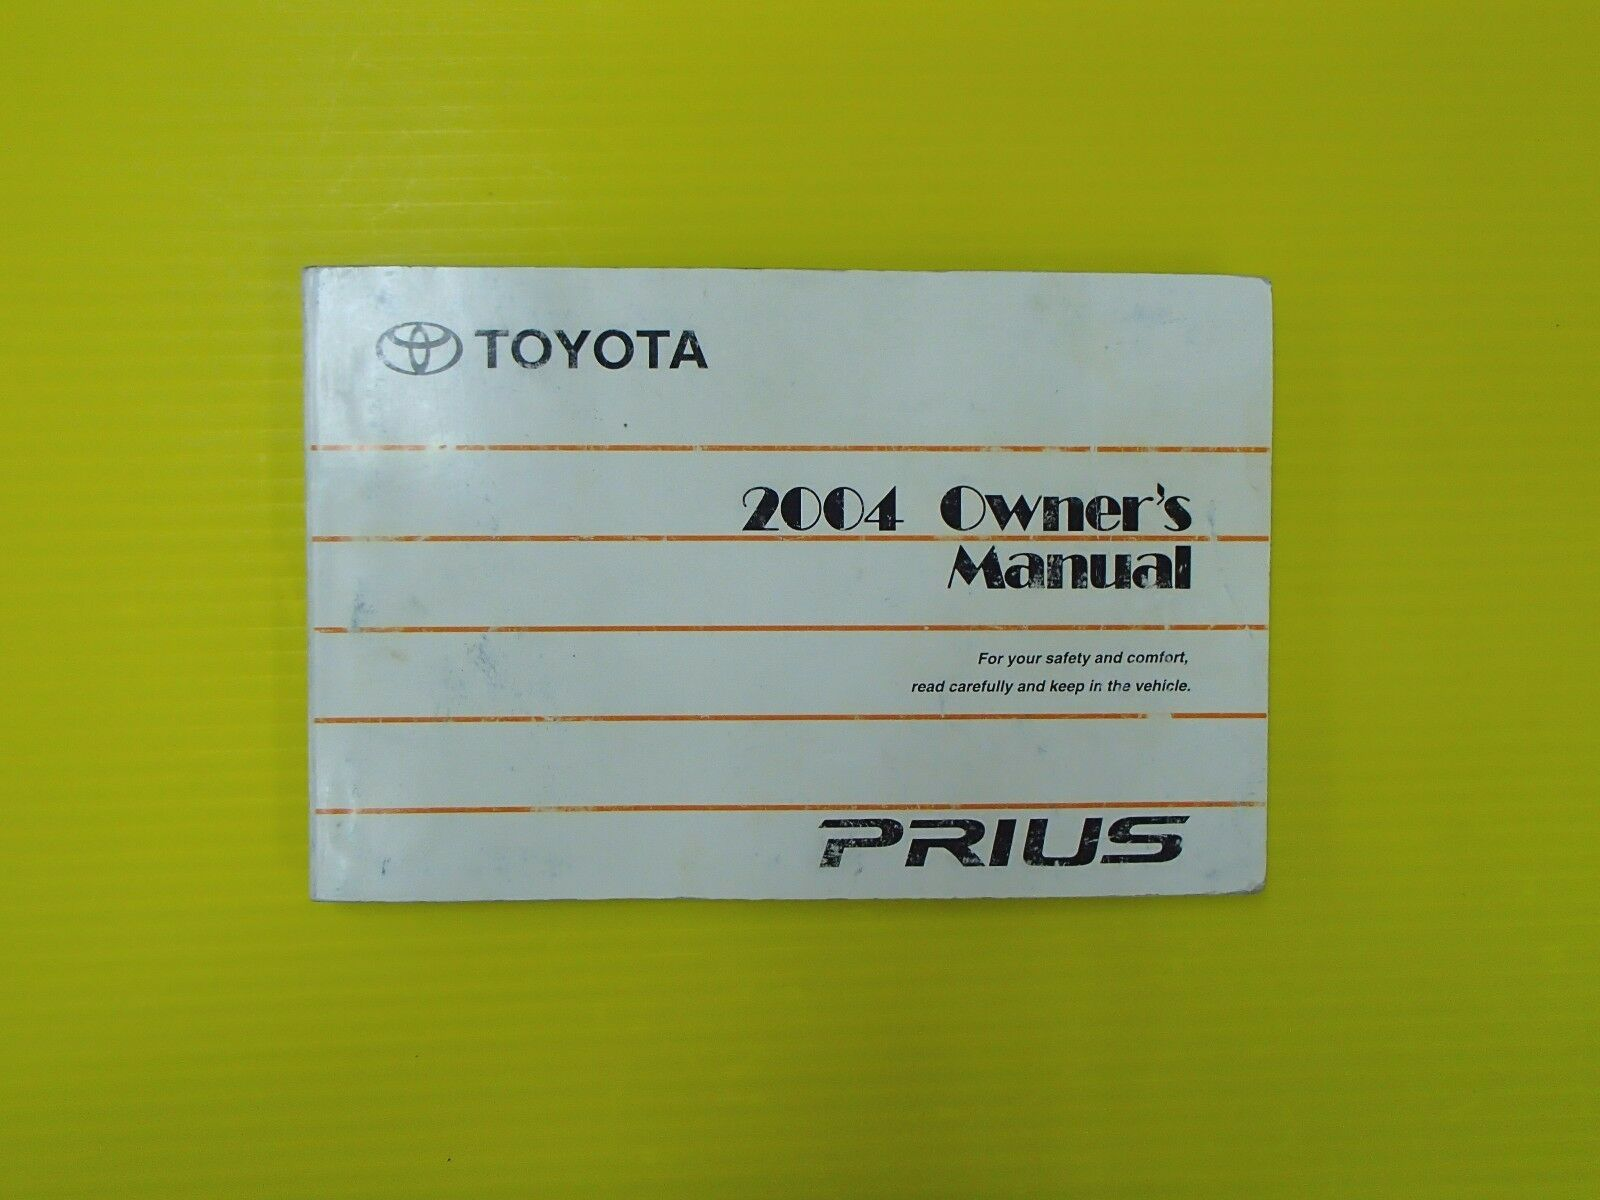 Prius Hatchback 04 2004 Toyota Owners Owner's Manual 1 of 1Only 1 available  ...